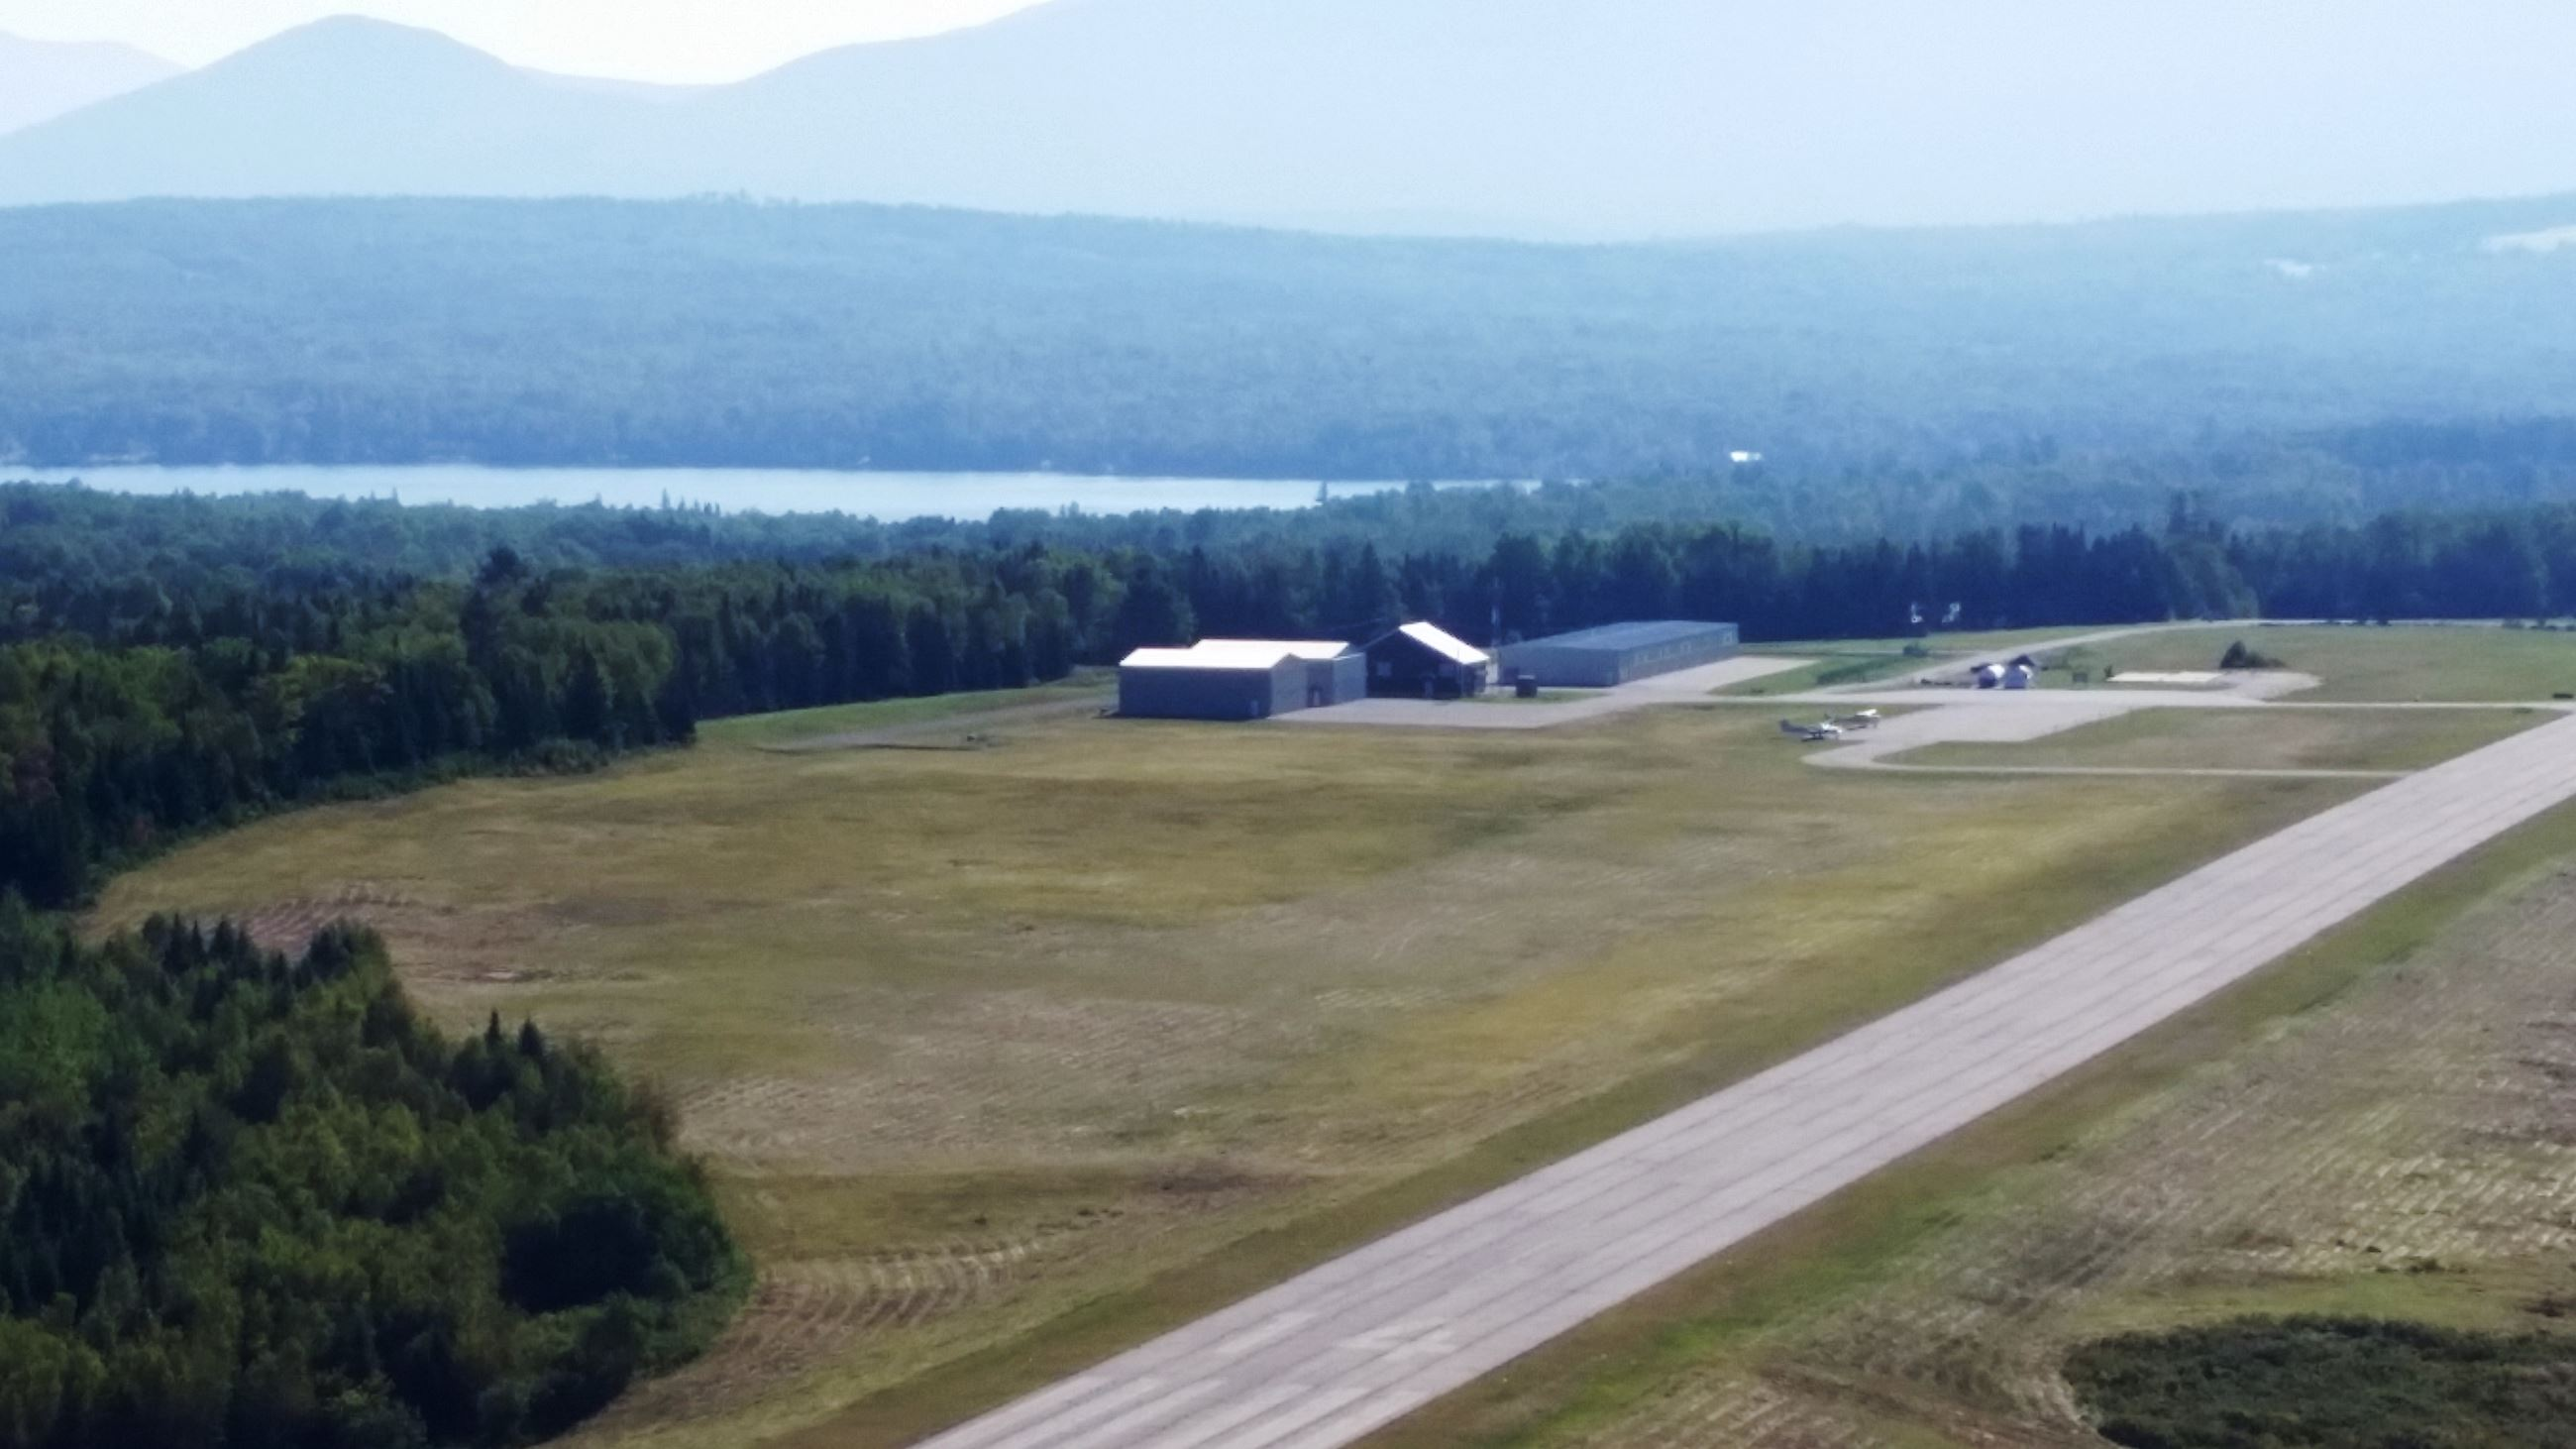 Hangars at the municipal airport